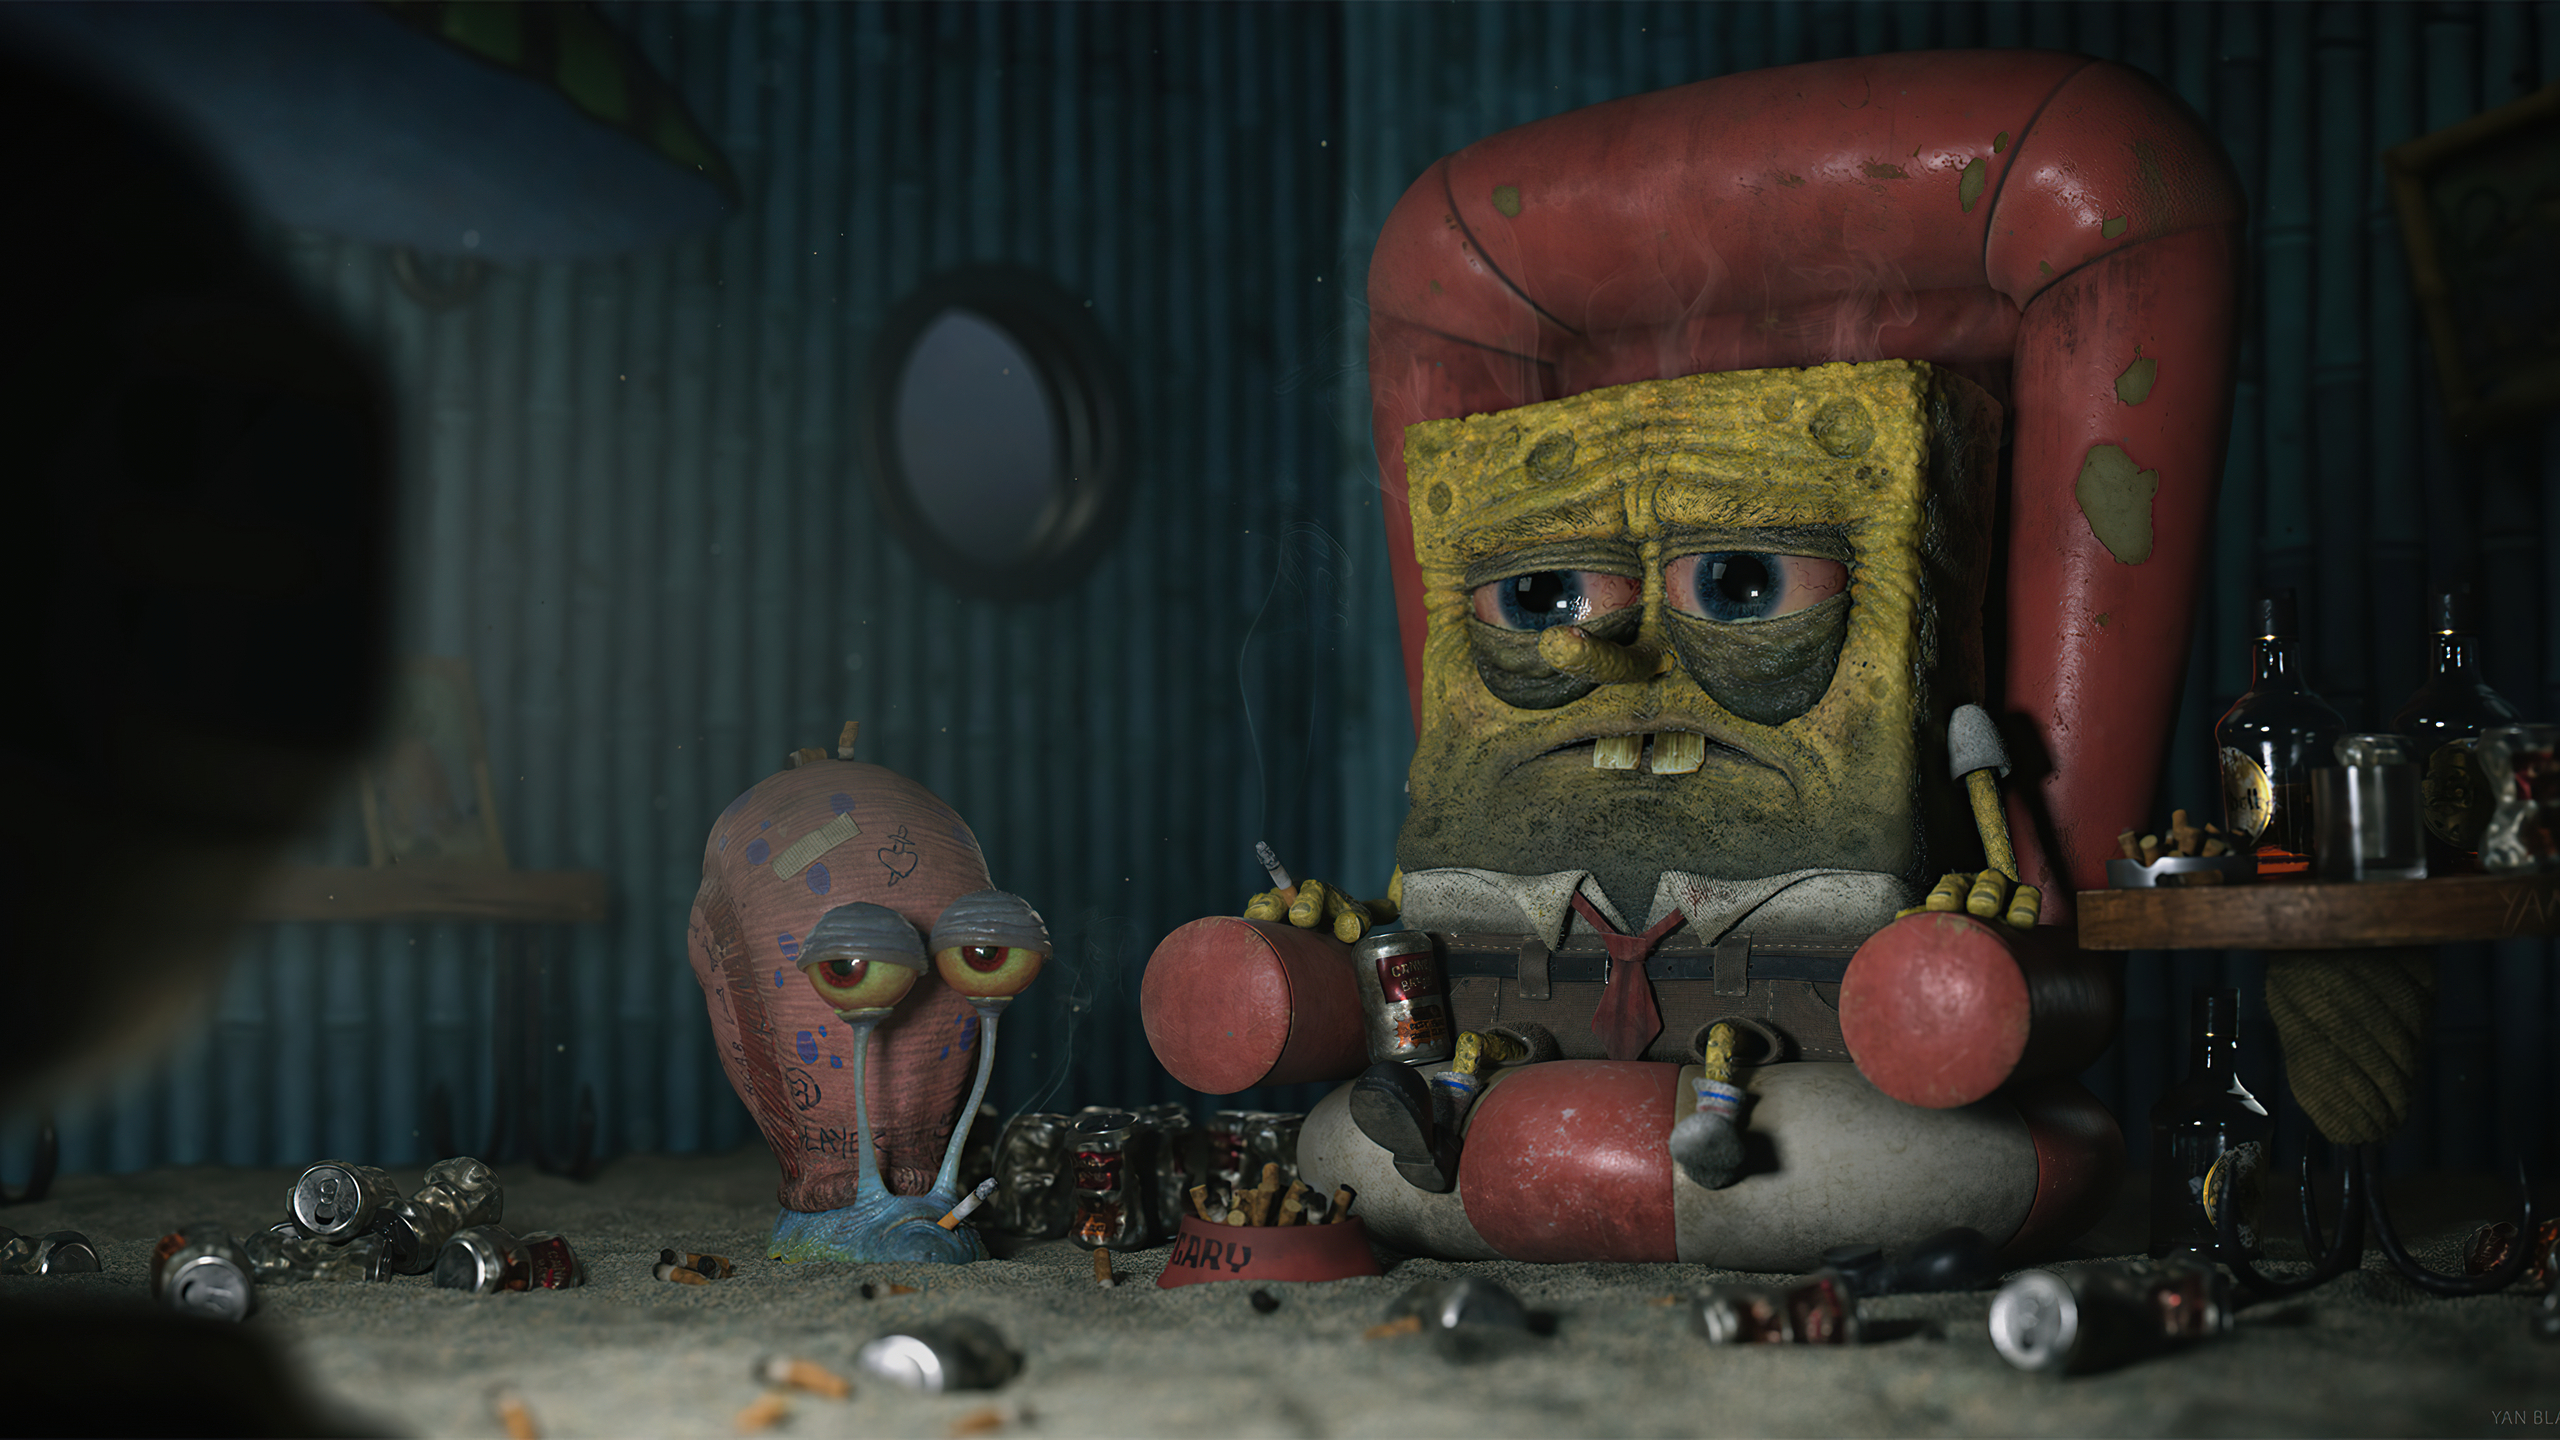 spongebob-tired-un.jpg